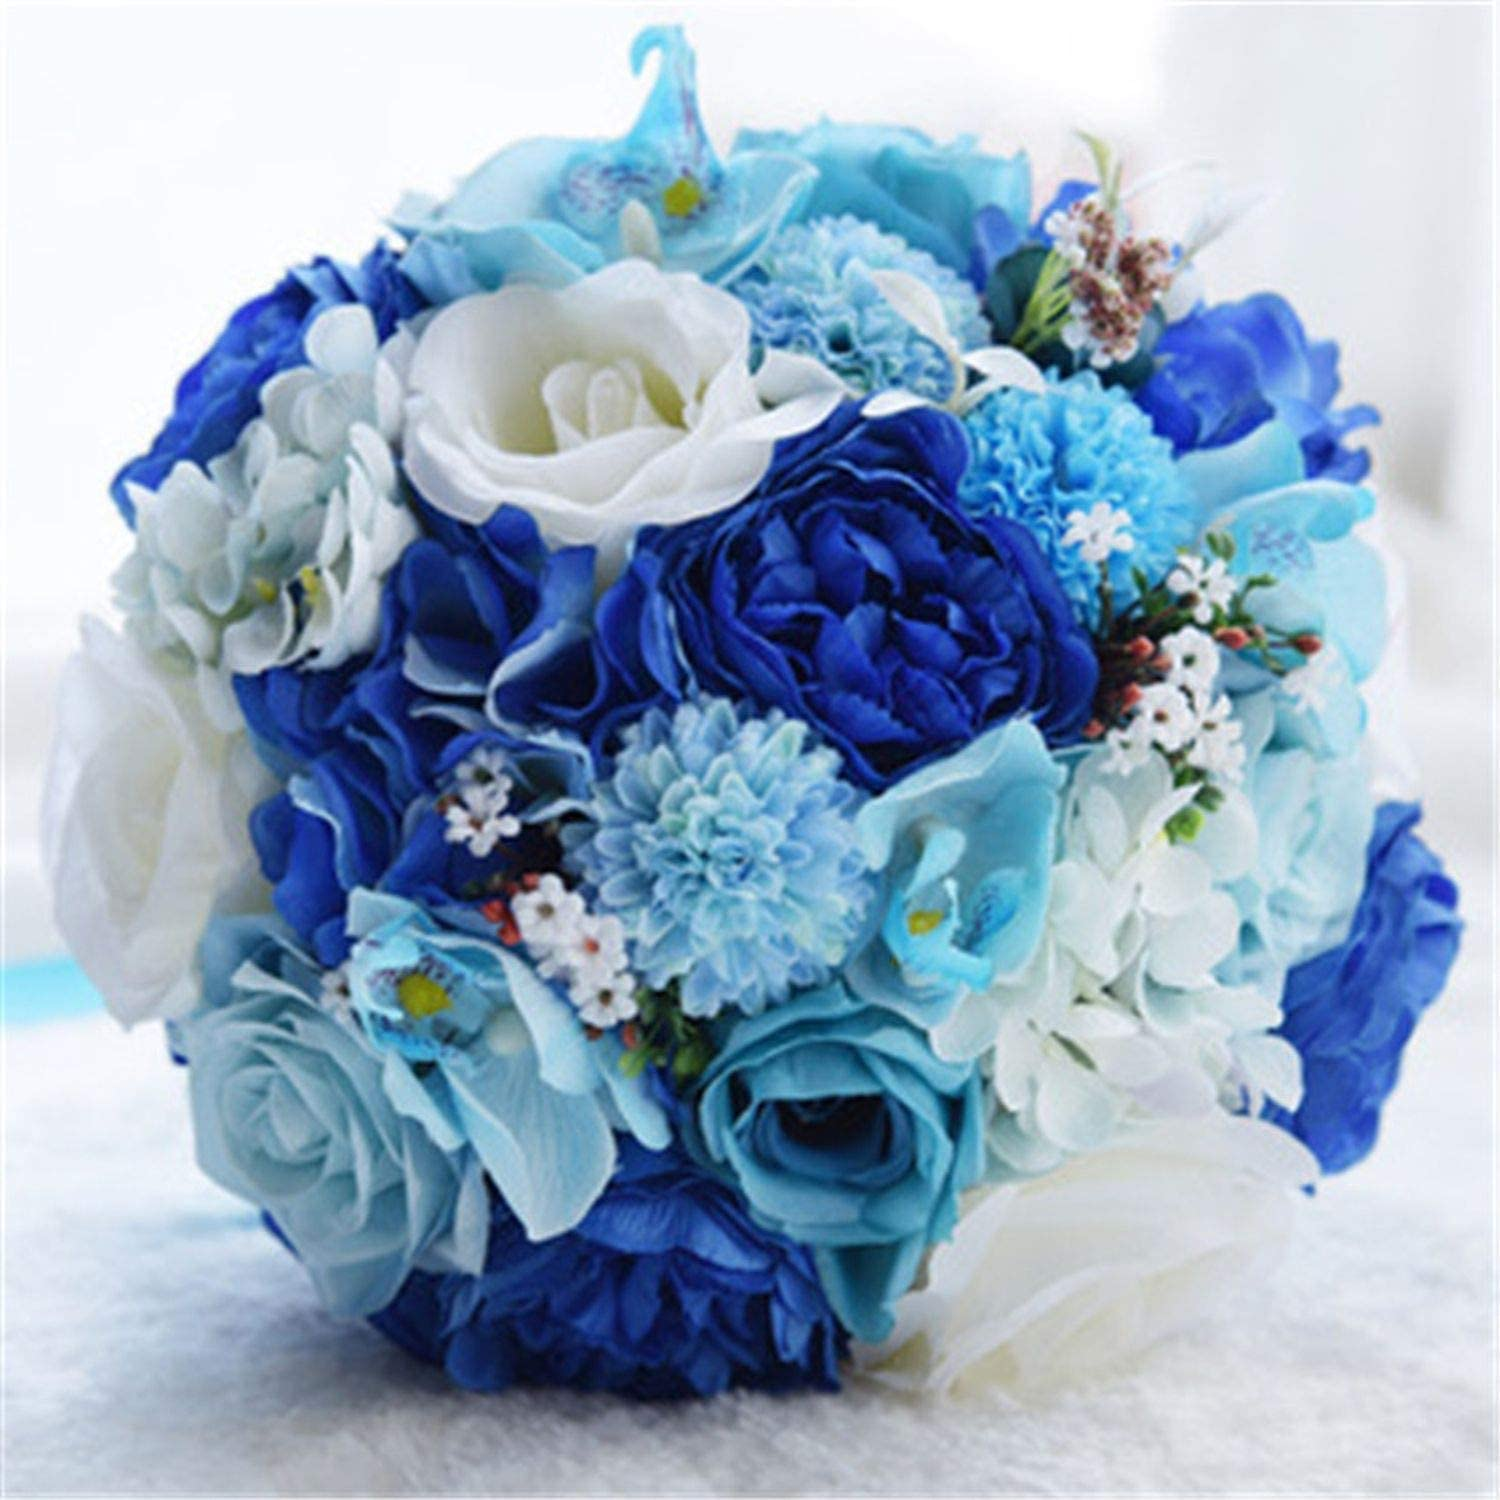 Amazon Com Kaka Home Artificial Flowers Beautiful Blue White Rose Bouquet Groom Bride Holding Flowers Wedding Bridesmaid Decoration Fake Flowers Blue White Kitchen Dining